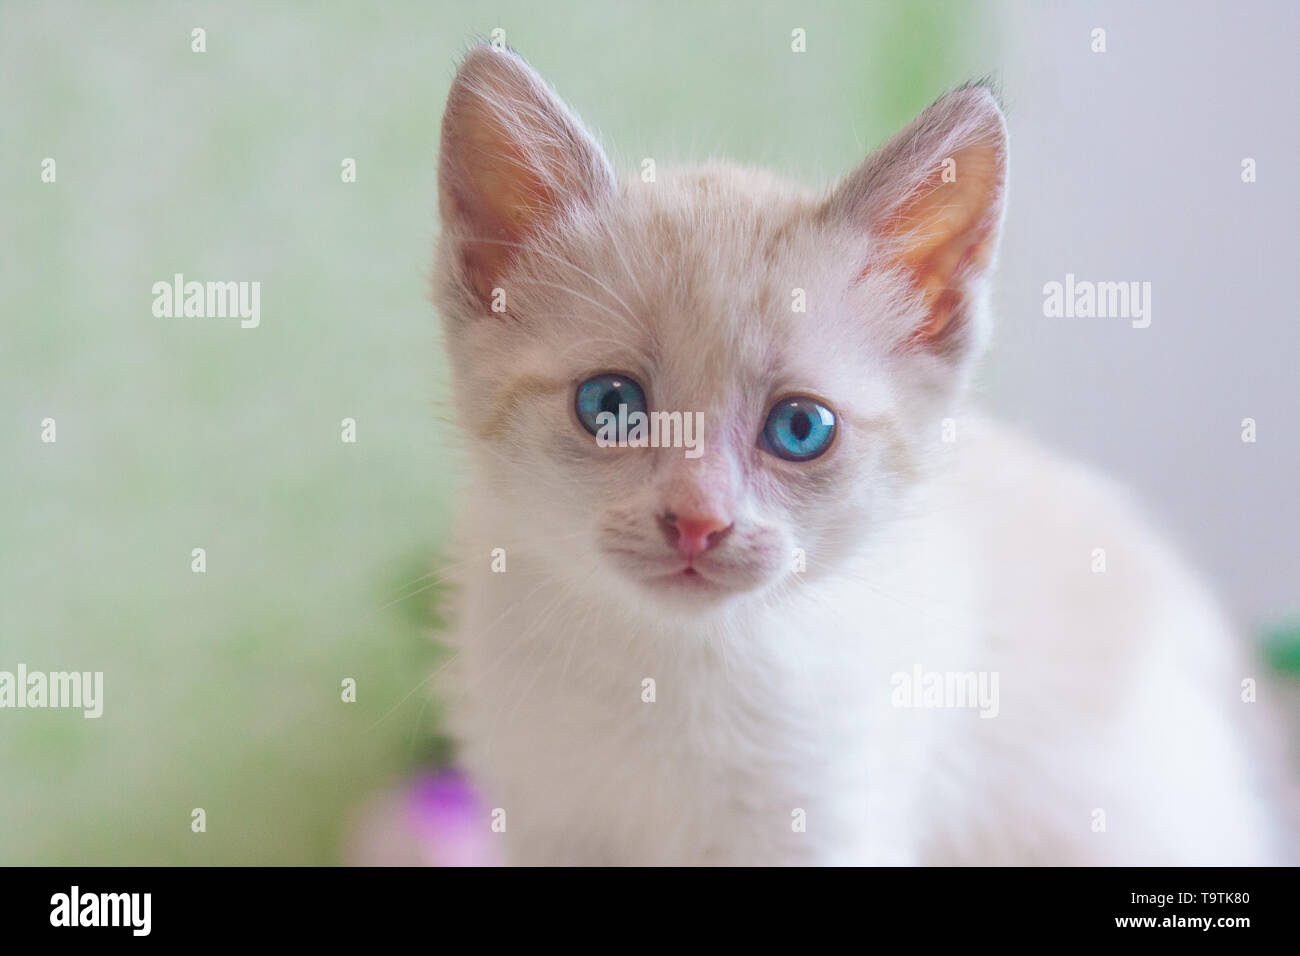 Portrait of a cat close-up. White kitten looking at the camera. Face home predator. - Stock Image